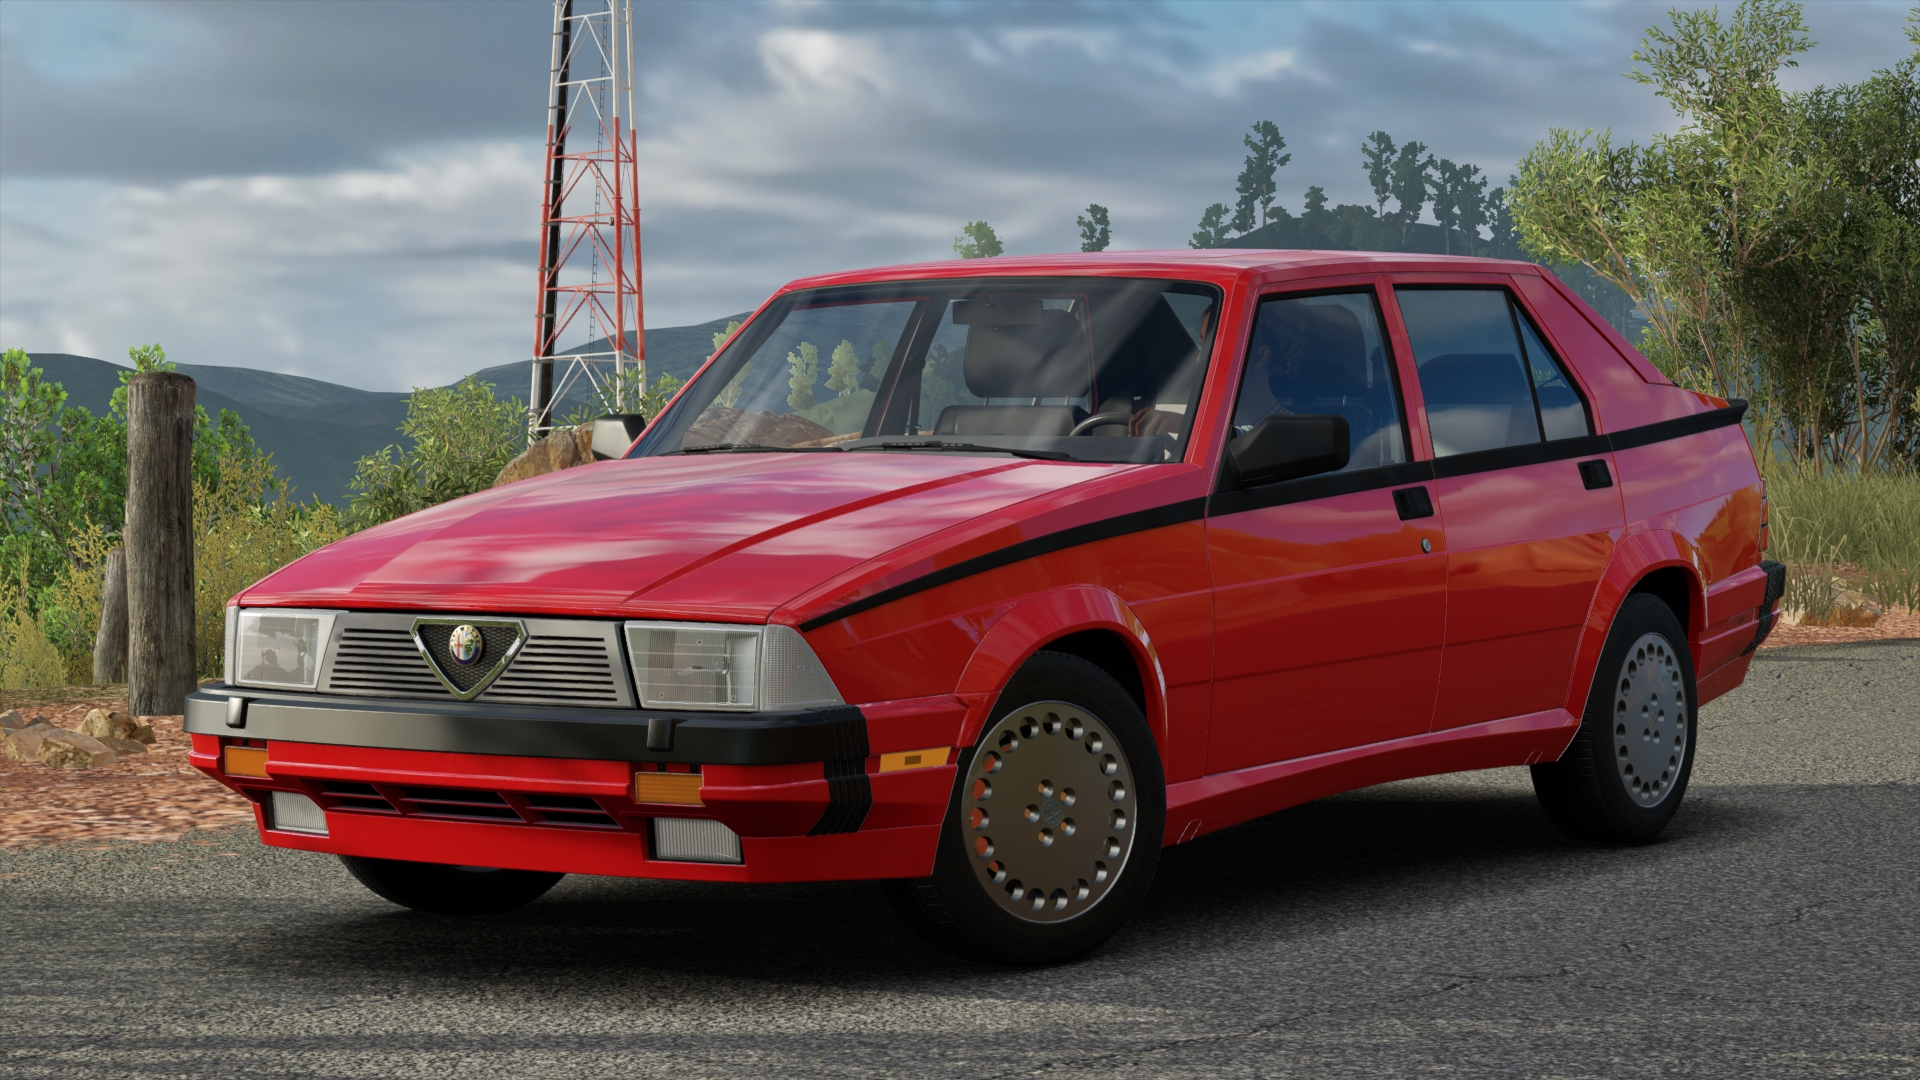 alfa romeo milano quadrifoglio verde forza motorsport wiki fandom powered by wikia. Black Bedroom Furniture Sets. Home Design Ideas